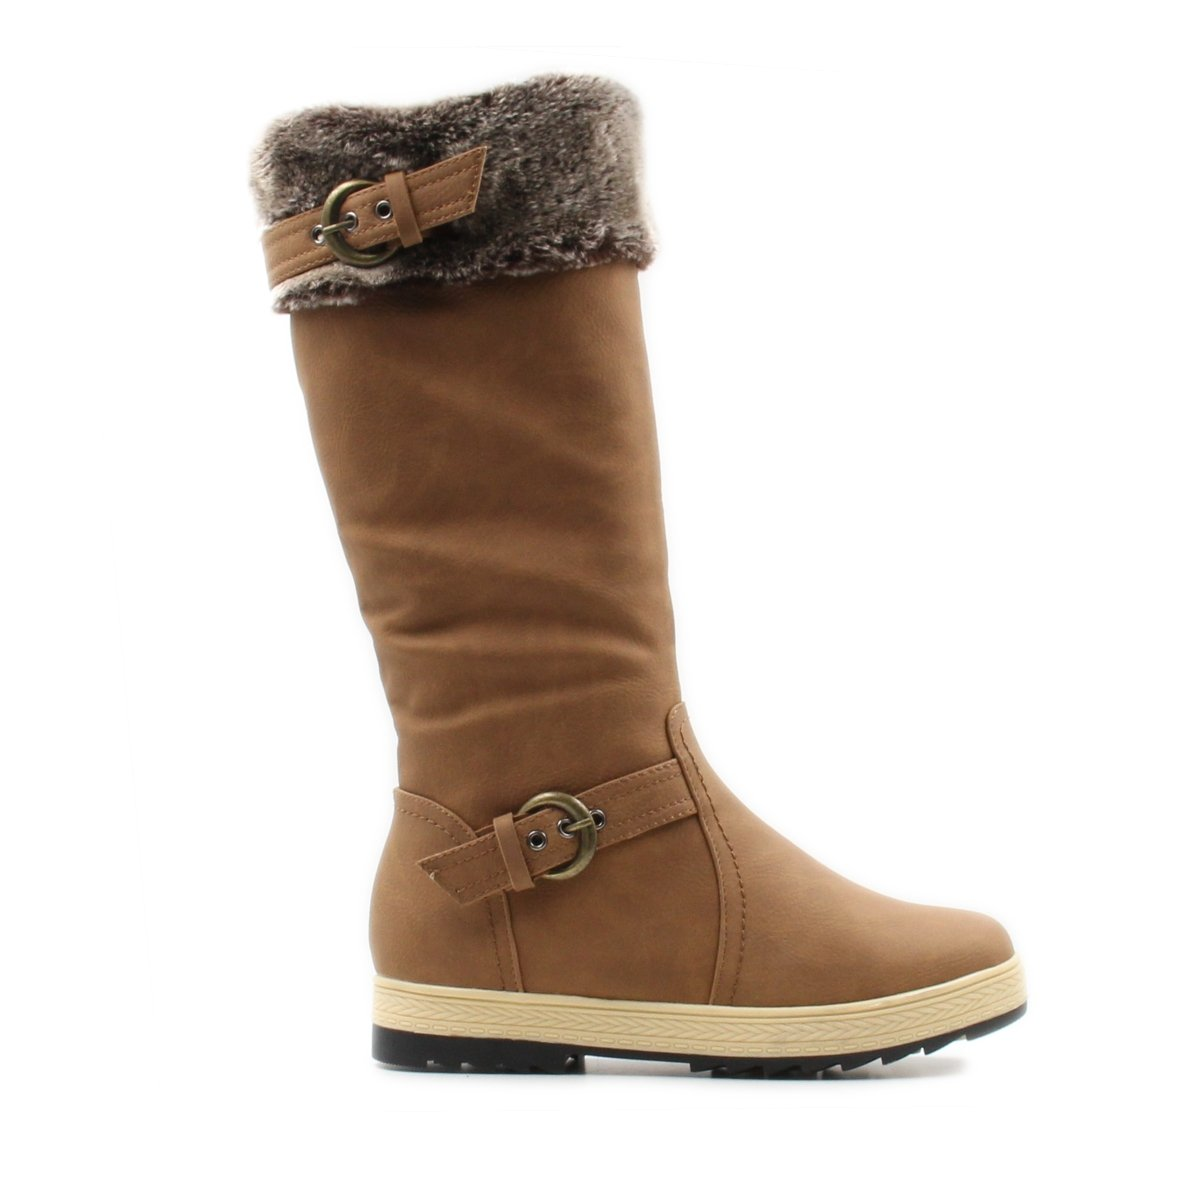 Stylish & Comfort Women's Knee High Zipper up Winter Boots with Fur Lined Collar and Interior Warm Shoes (7.5, Tan)